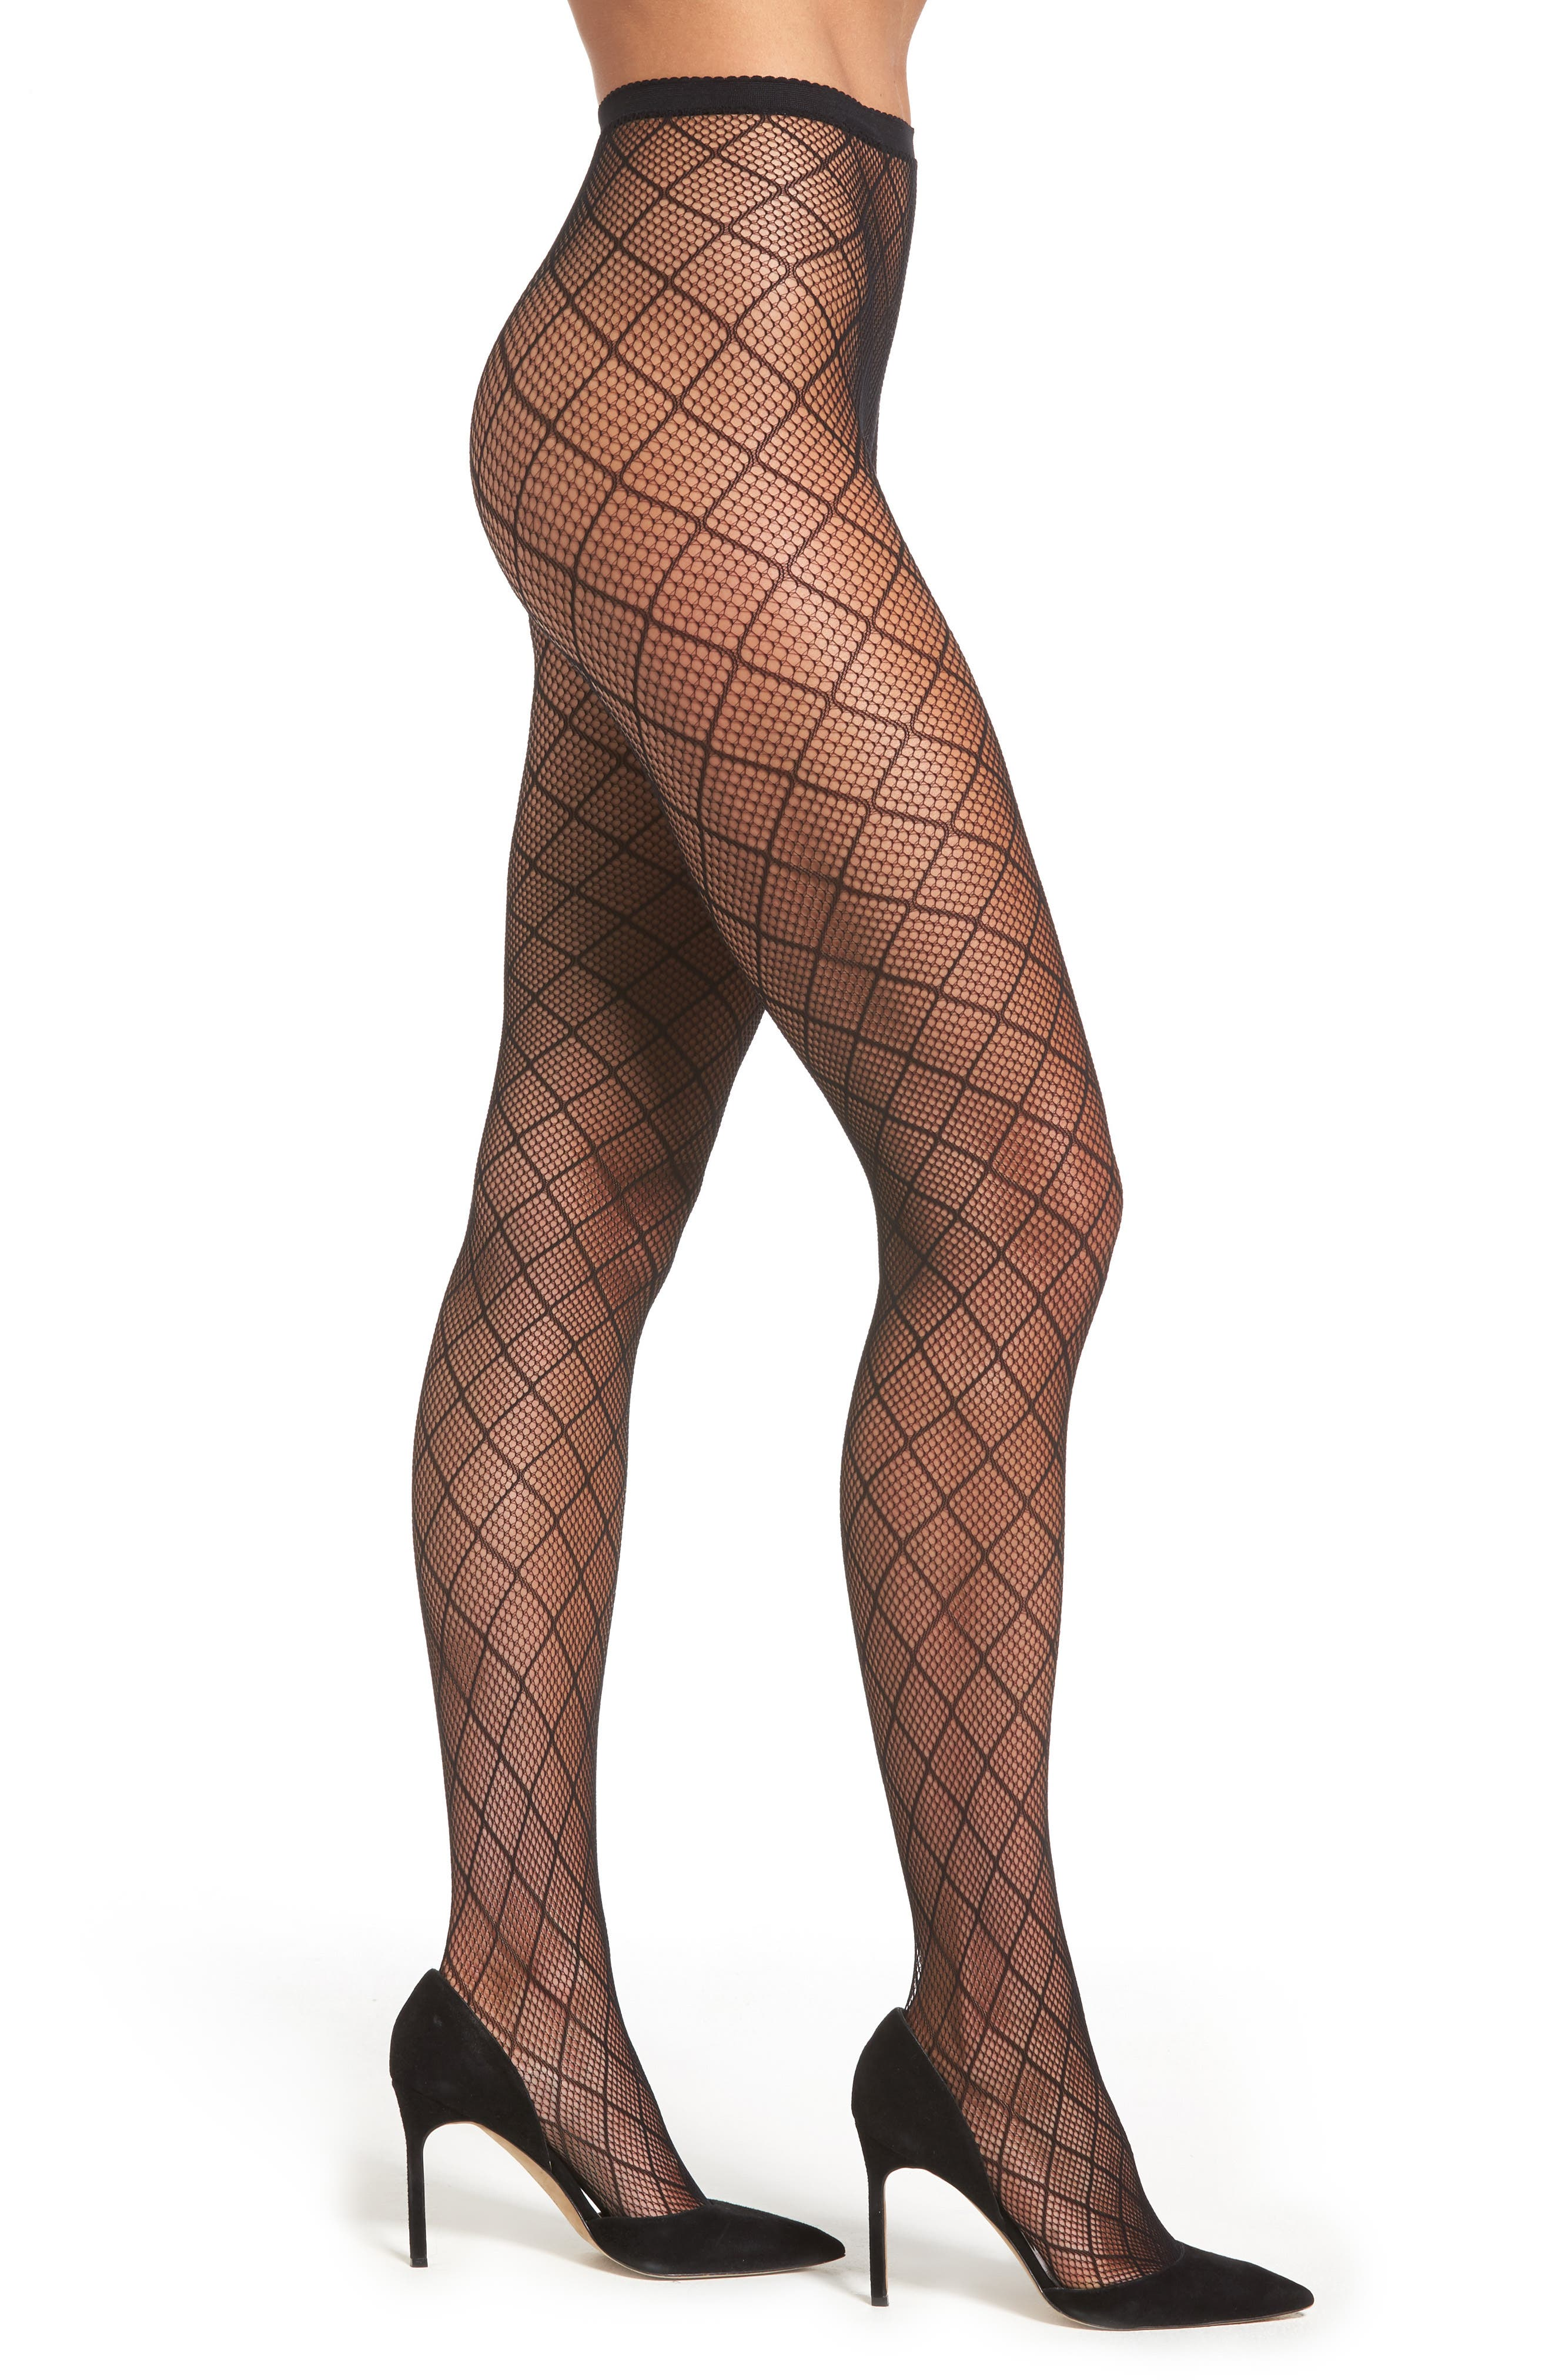 Nordstrom Diamond Tights